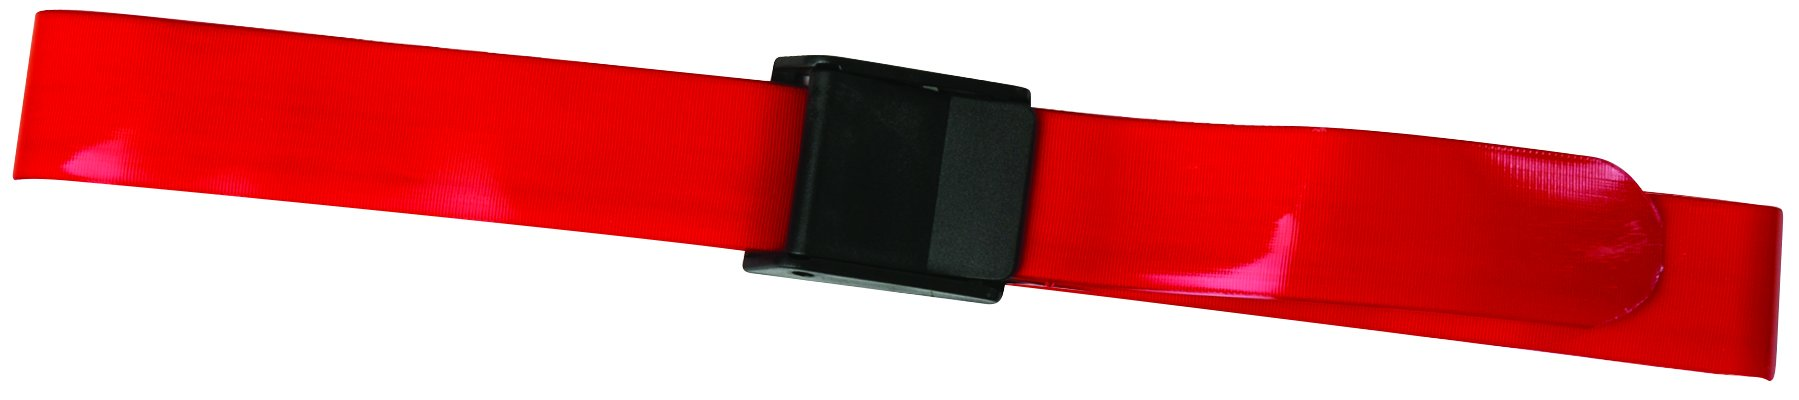 Secure SPGB-60R Quick Clean Antimicrobial Transfer Gait Belt, Red, 60'' x 2'' - Patient Safety Aid for Caregiver, Nurse, Therapist, etc.